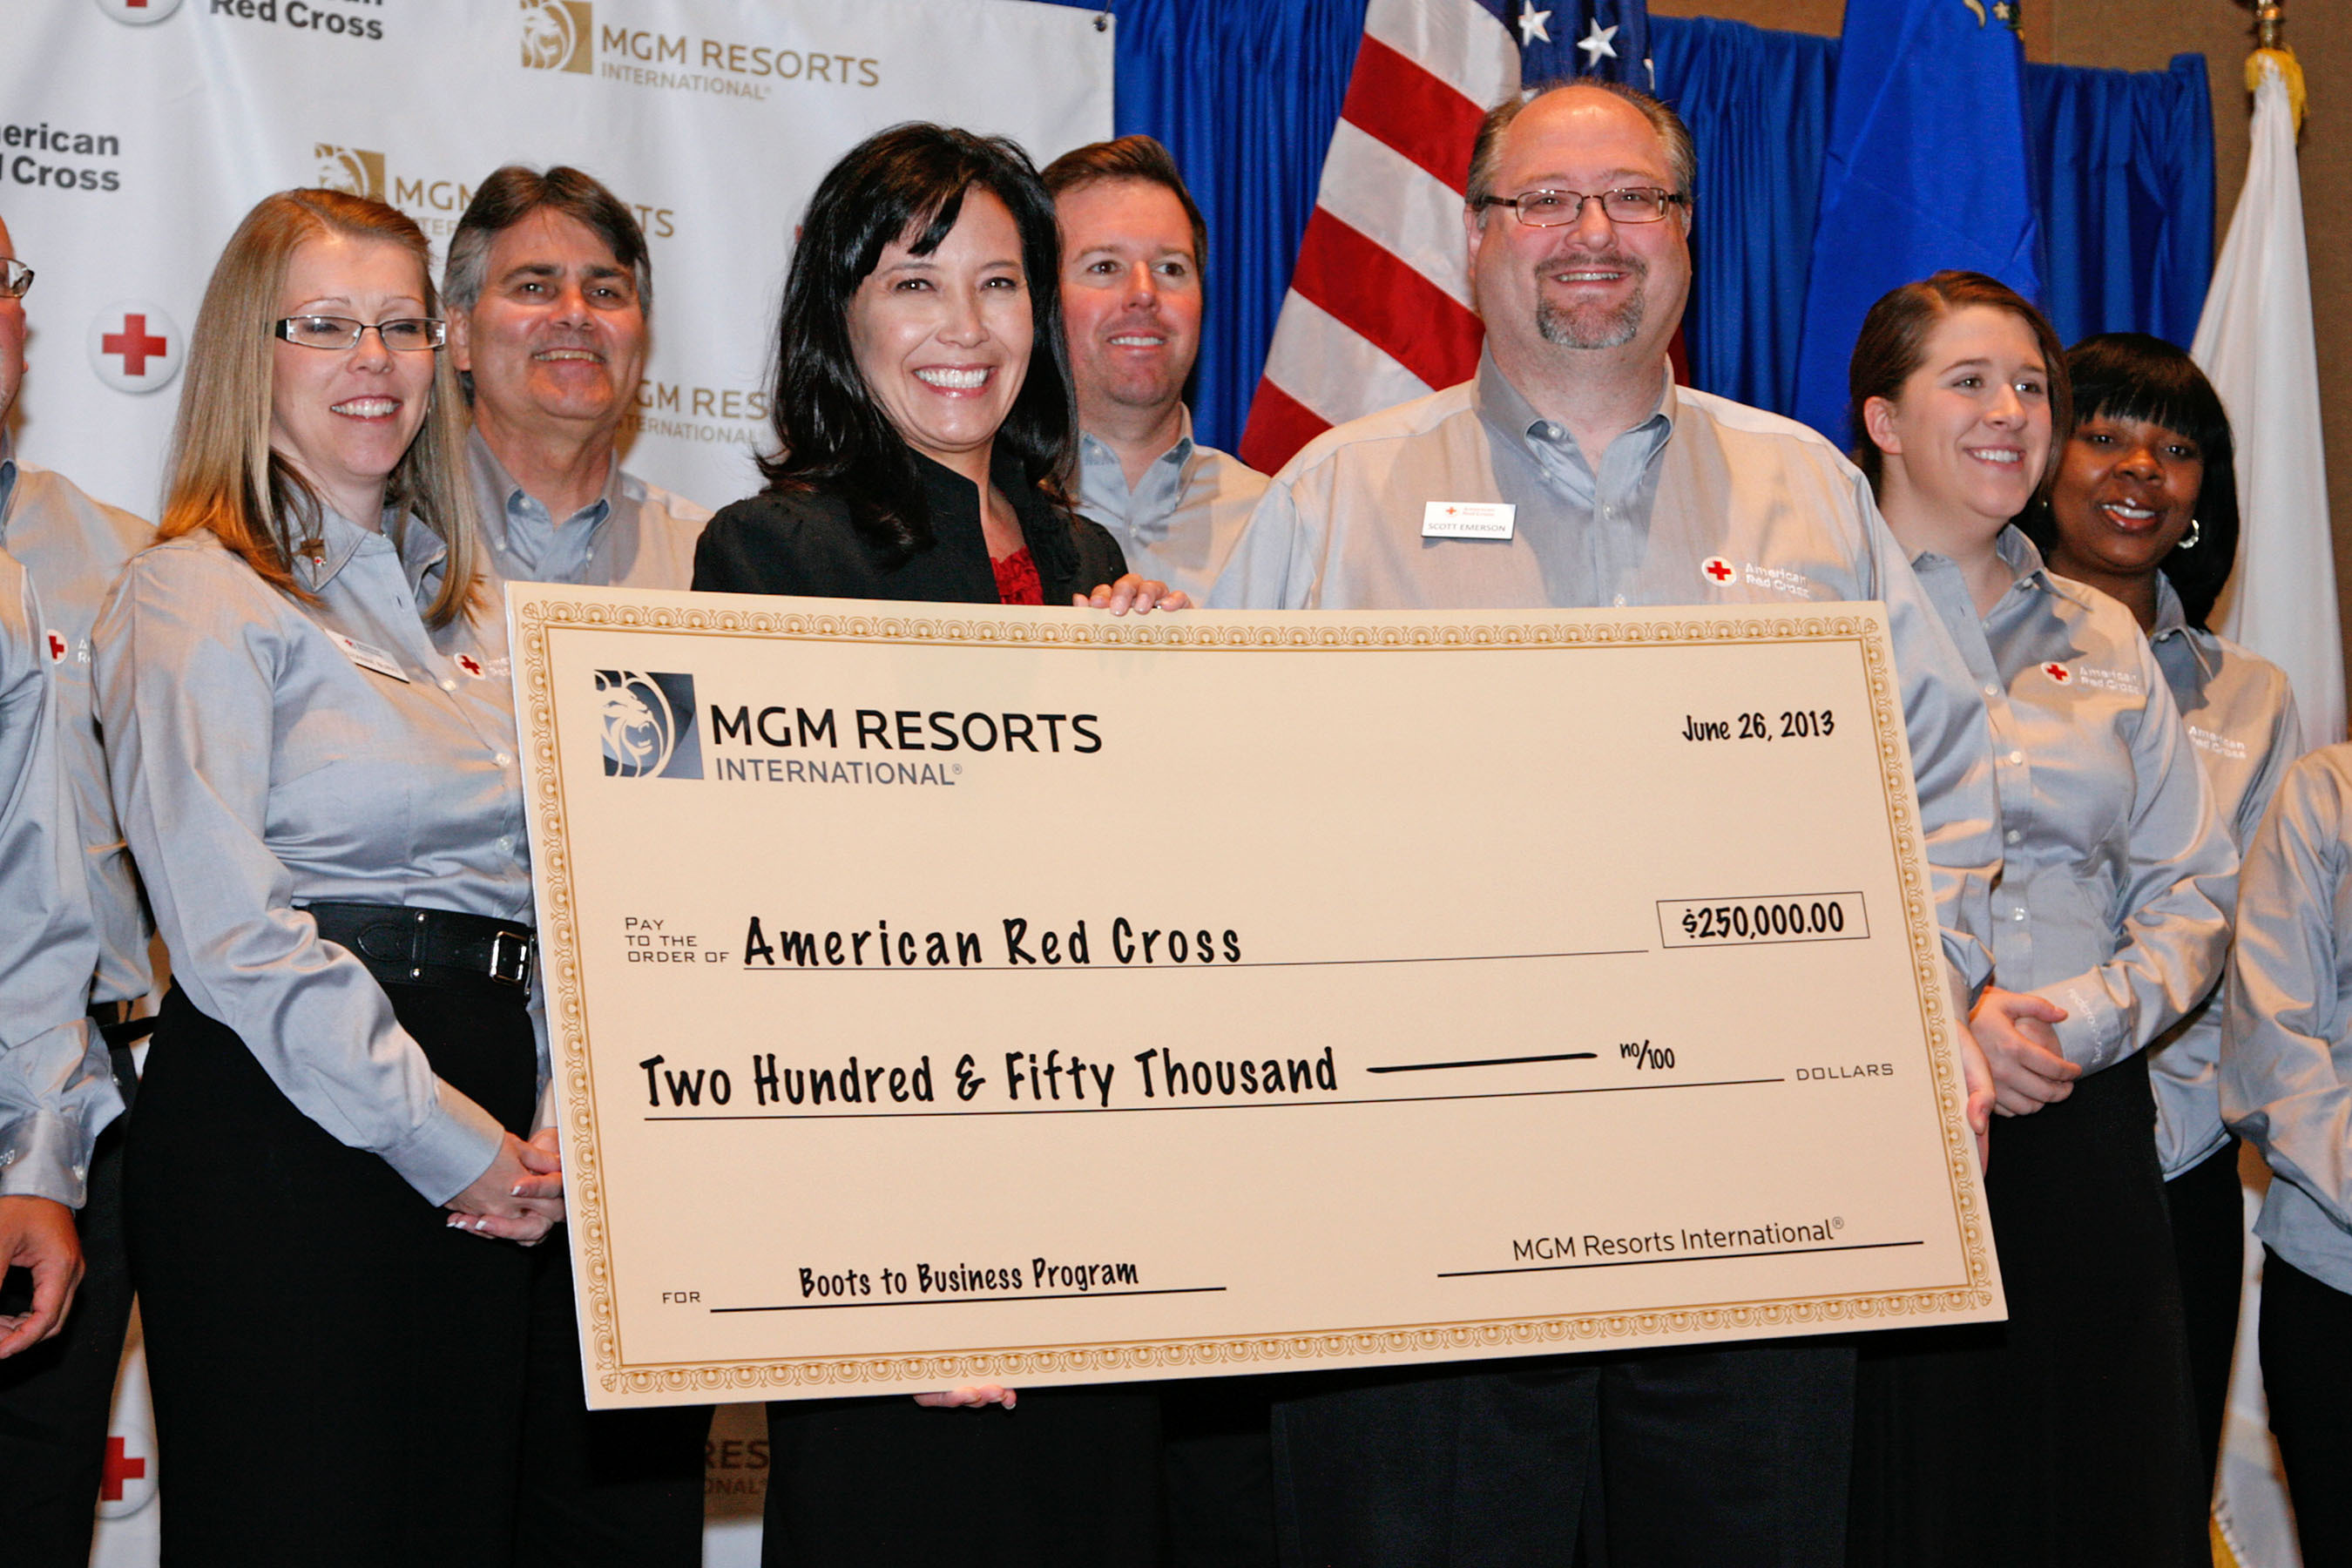 Through a grant of $250,000, MGM Resorts International is partnering with American Red Cross to expand Boots to Business, a hands-on management training program designed to help employ recent U.S. veterans. Pictured (l. to r.) at the June 26 presentation of the donation are Michelle DiTondo, Senior VP of Human Resources for MGM Resorts and Scott Emerson, CEO of the American Red Cross of Southern Nevada.  (PRNewsFoto/MGM Resorts International)